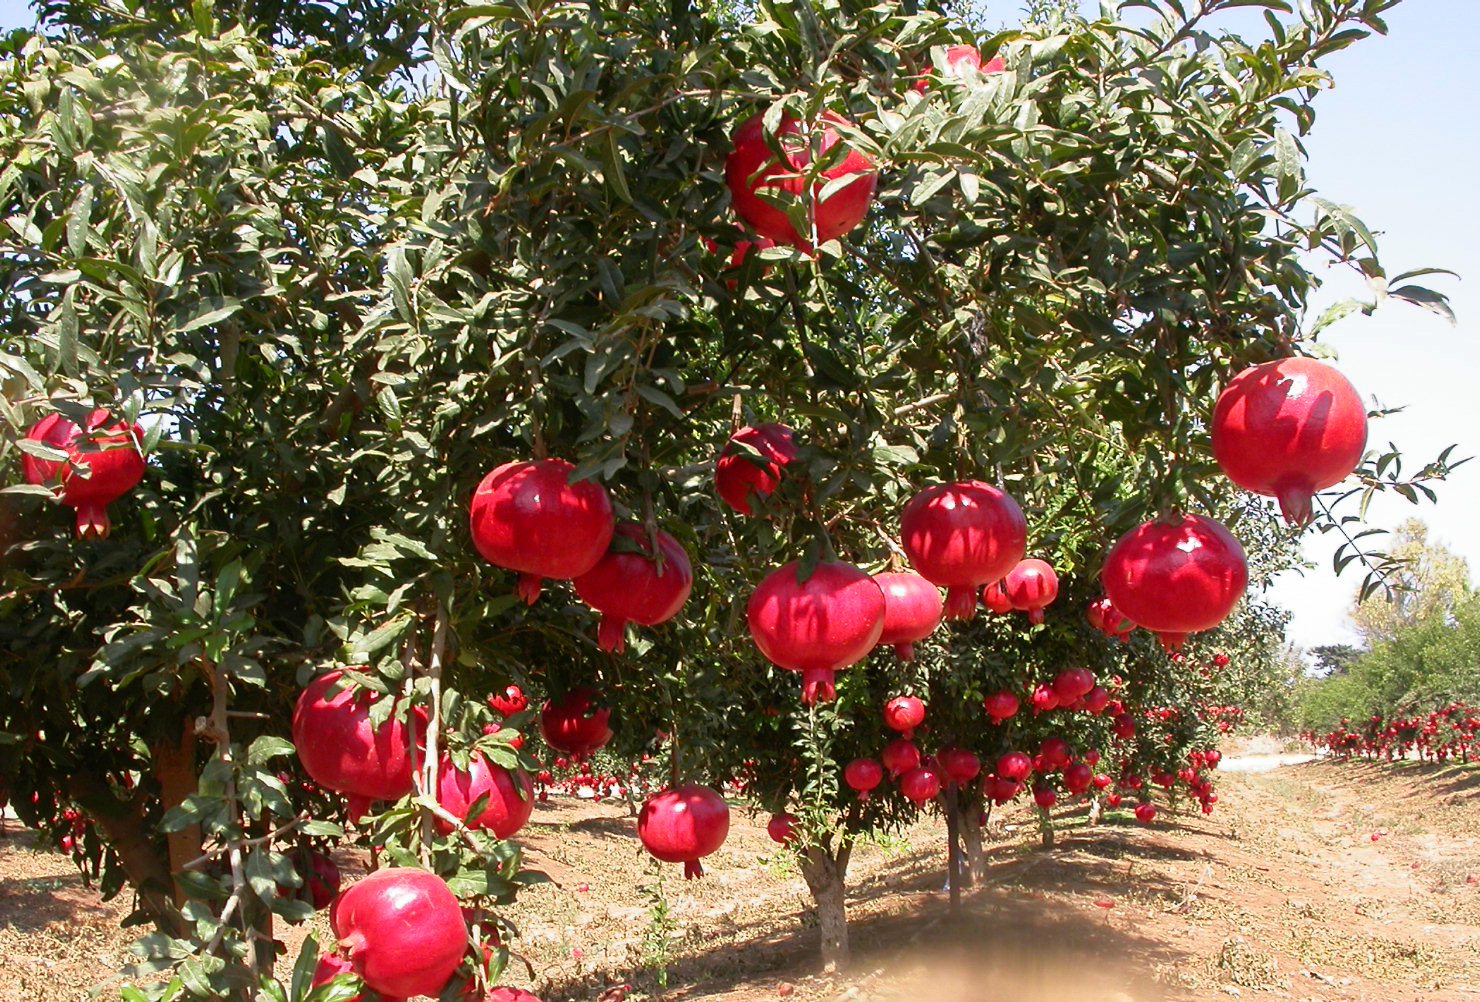 Pomegranate Farm